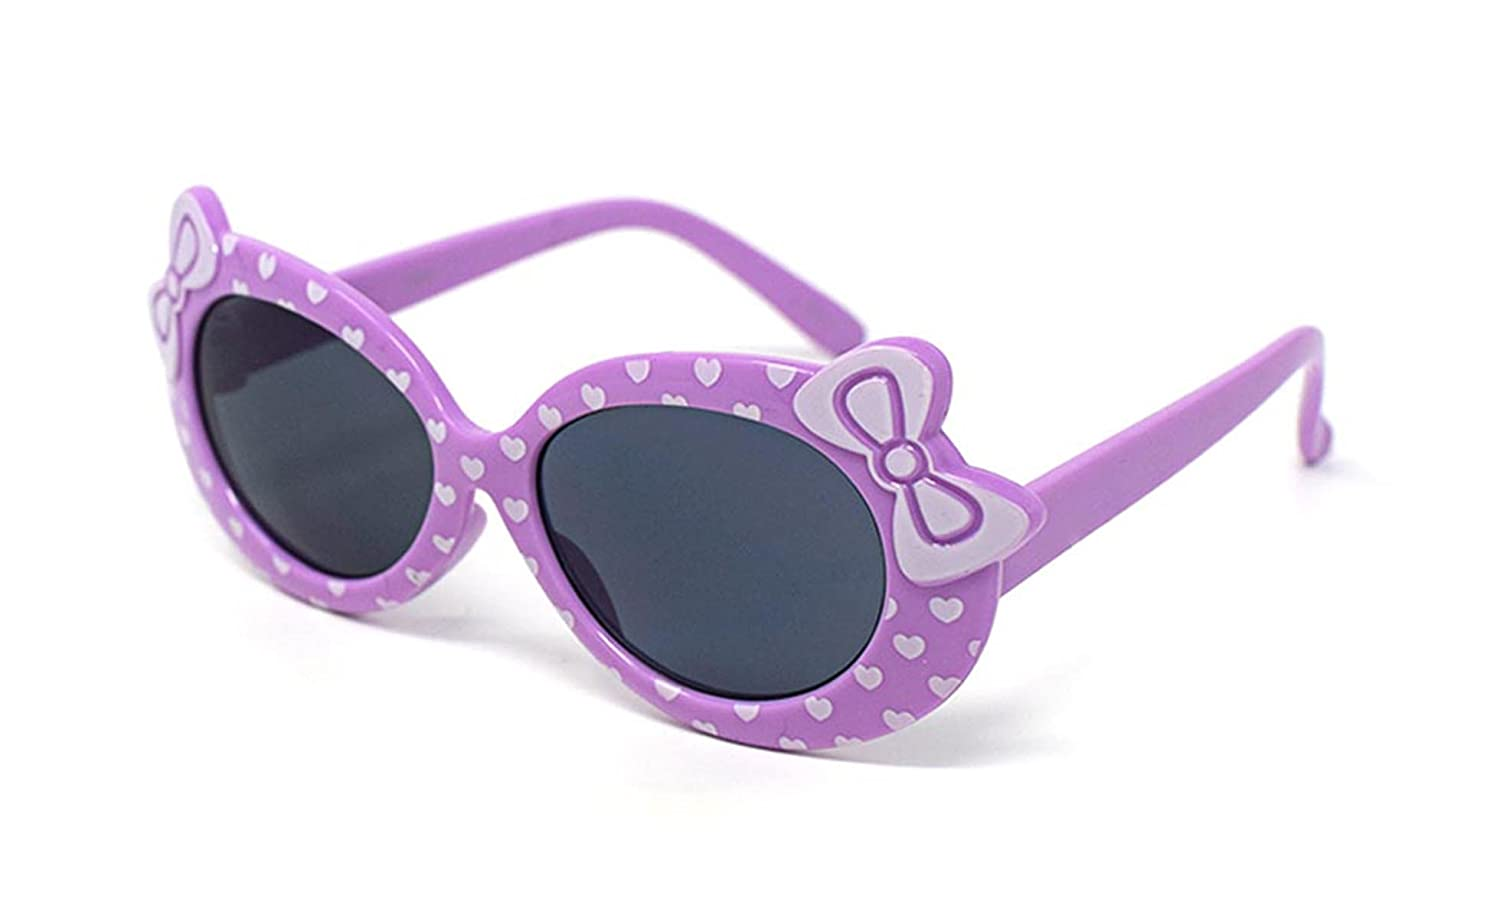 3 x Purple Coloured Childrens Kids Girls Stylish Cute Designer Style Sunglasses with a Bow and heart Style UV400 Sunglasses